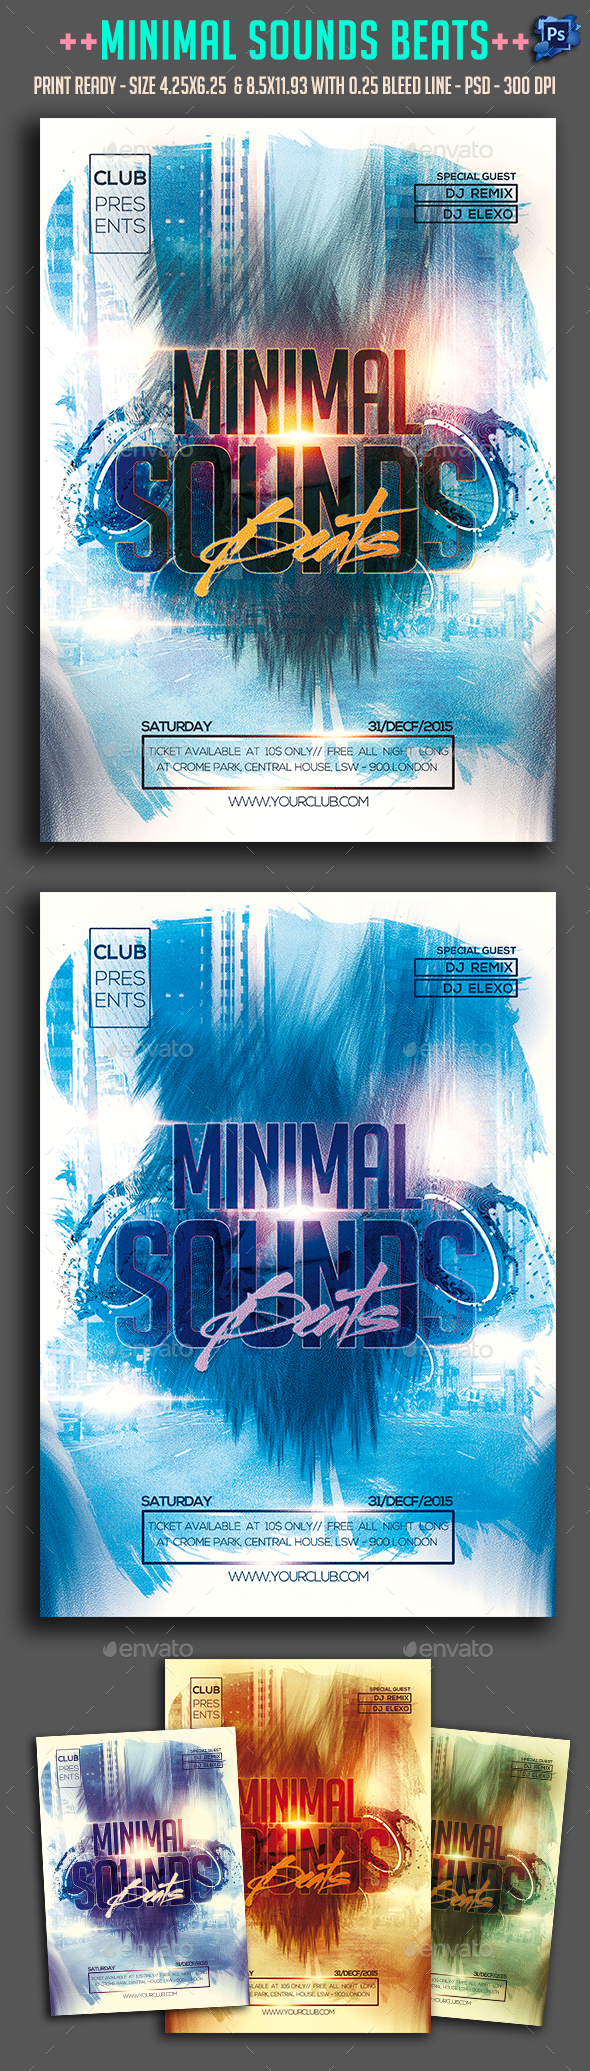 Minimal Sounds Beats Party Flyer  - Clubs & Parties Events